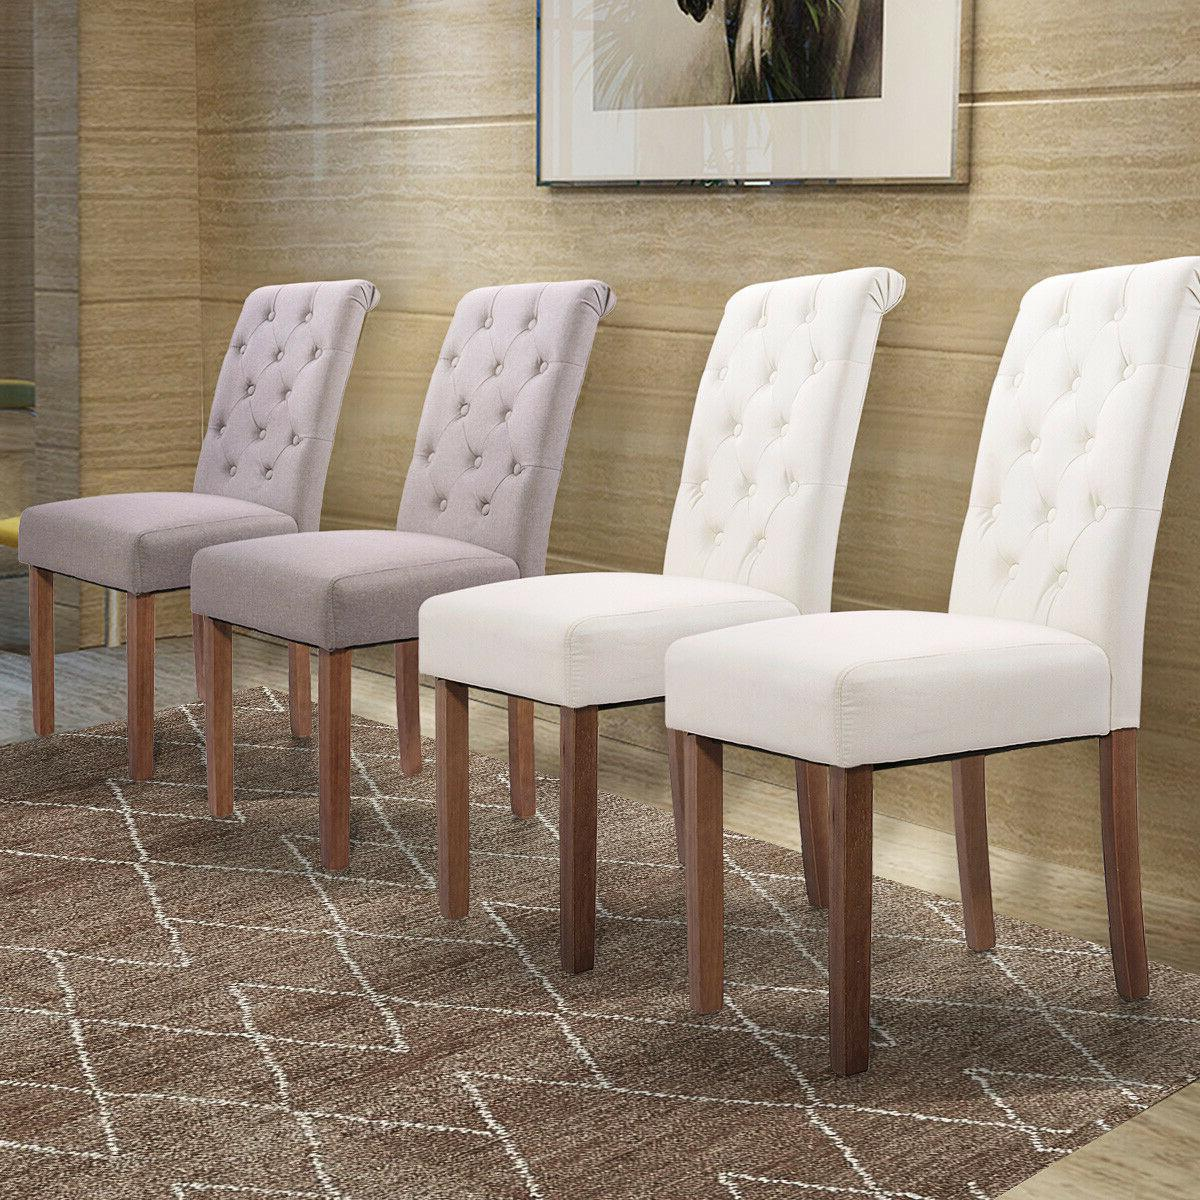 2 pcs dining side chairs w backrest